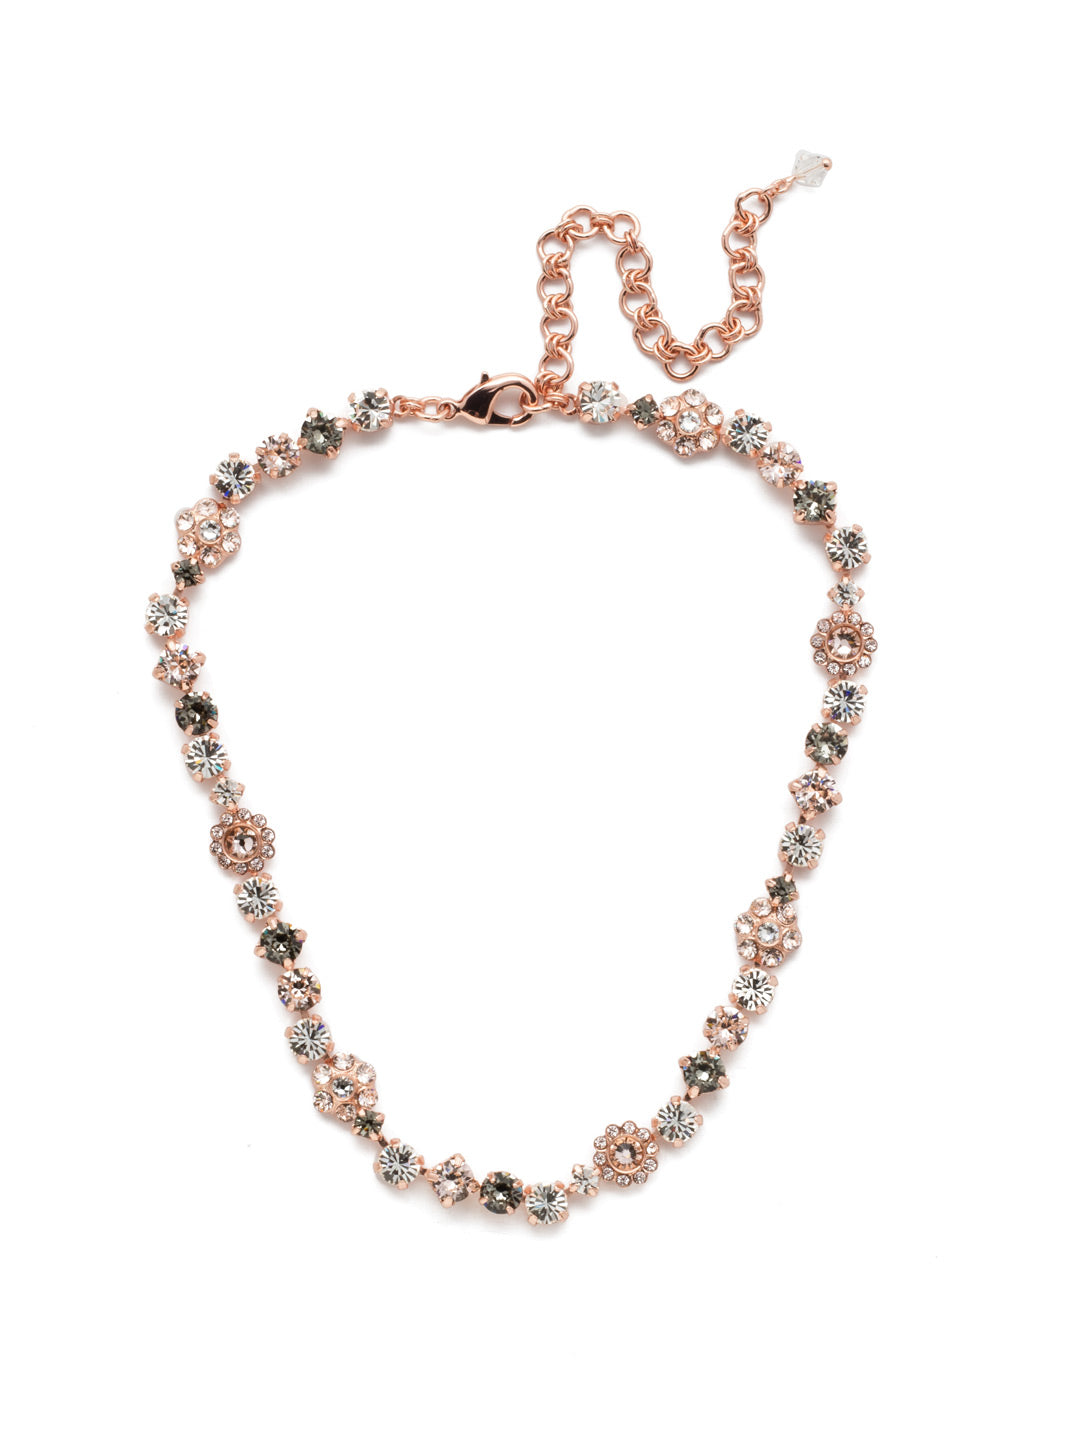 Classic Floral Tennis Necklace - NBE2RGSNB